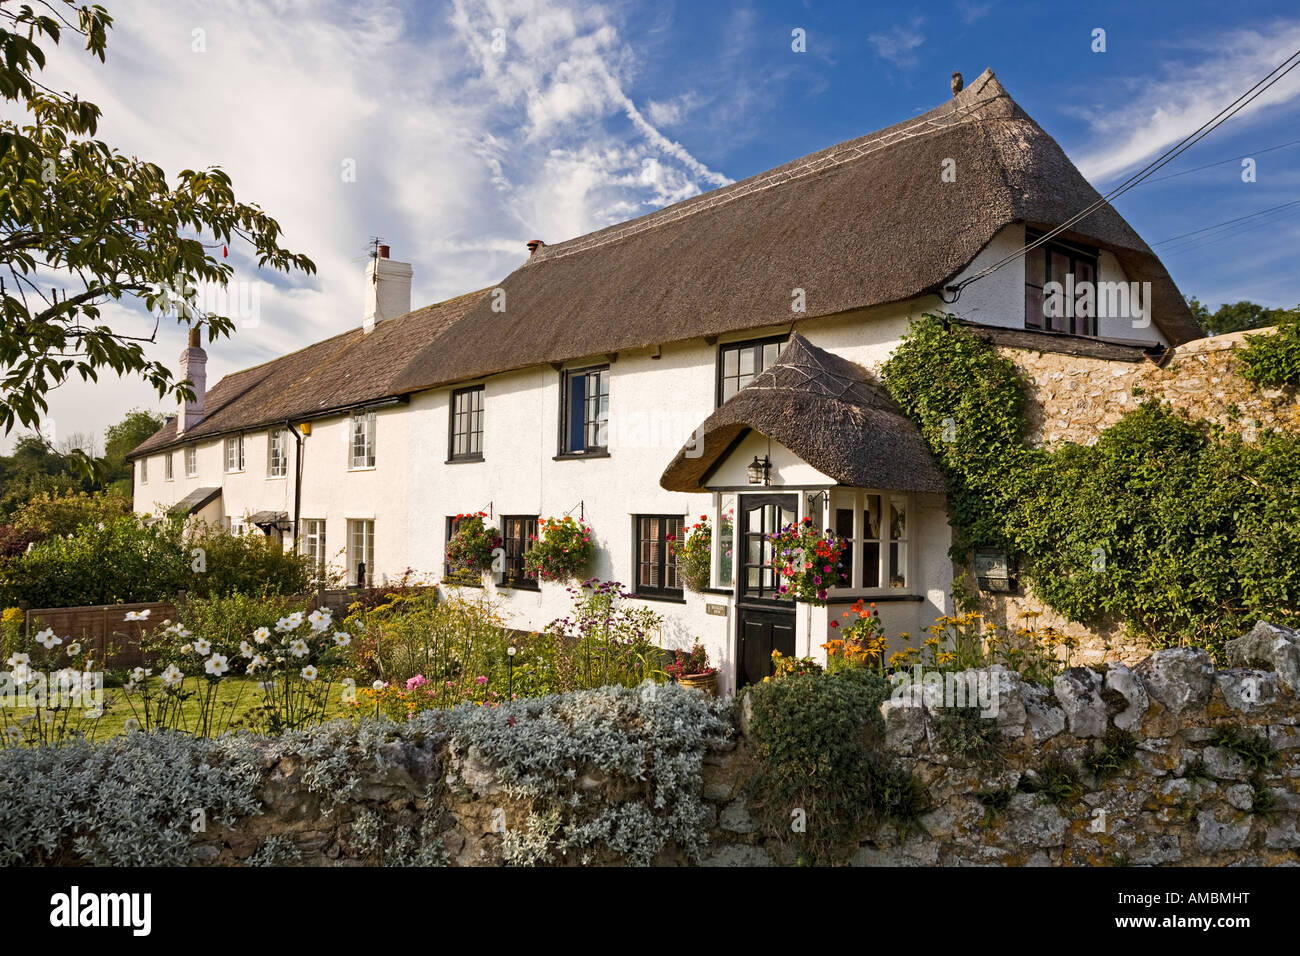 Thatched cottage with pretty English garden in the village of Shute, East Devon, England, UK in summer - Stock Image